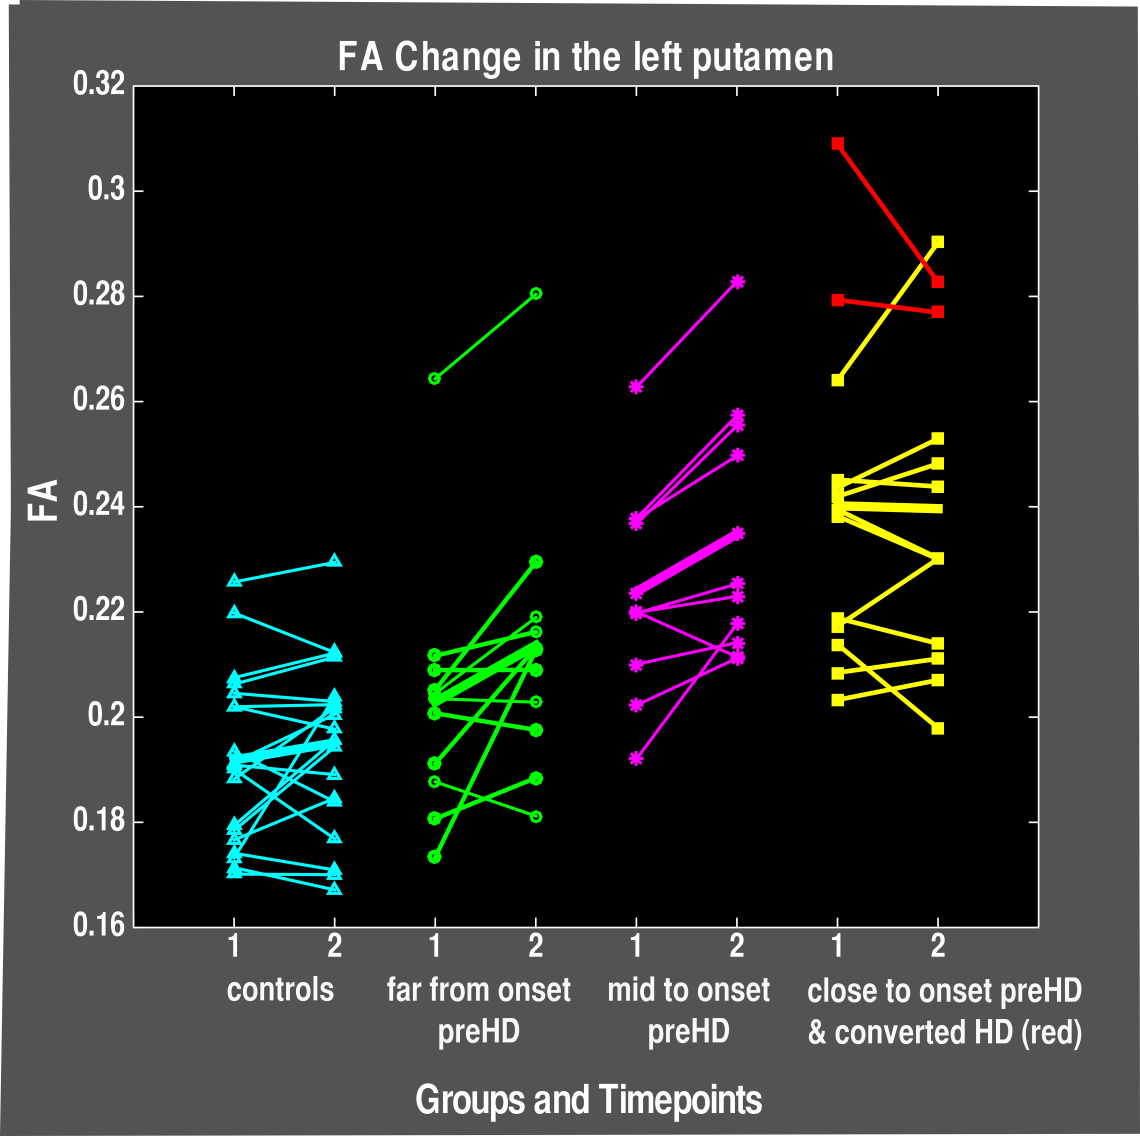 fractional anisotropy (FA) change over 1 year in pre-symptomatic Huntington's disease patients